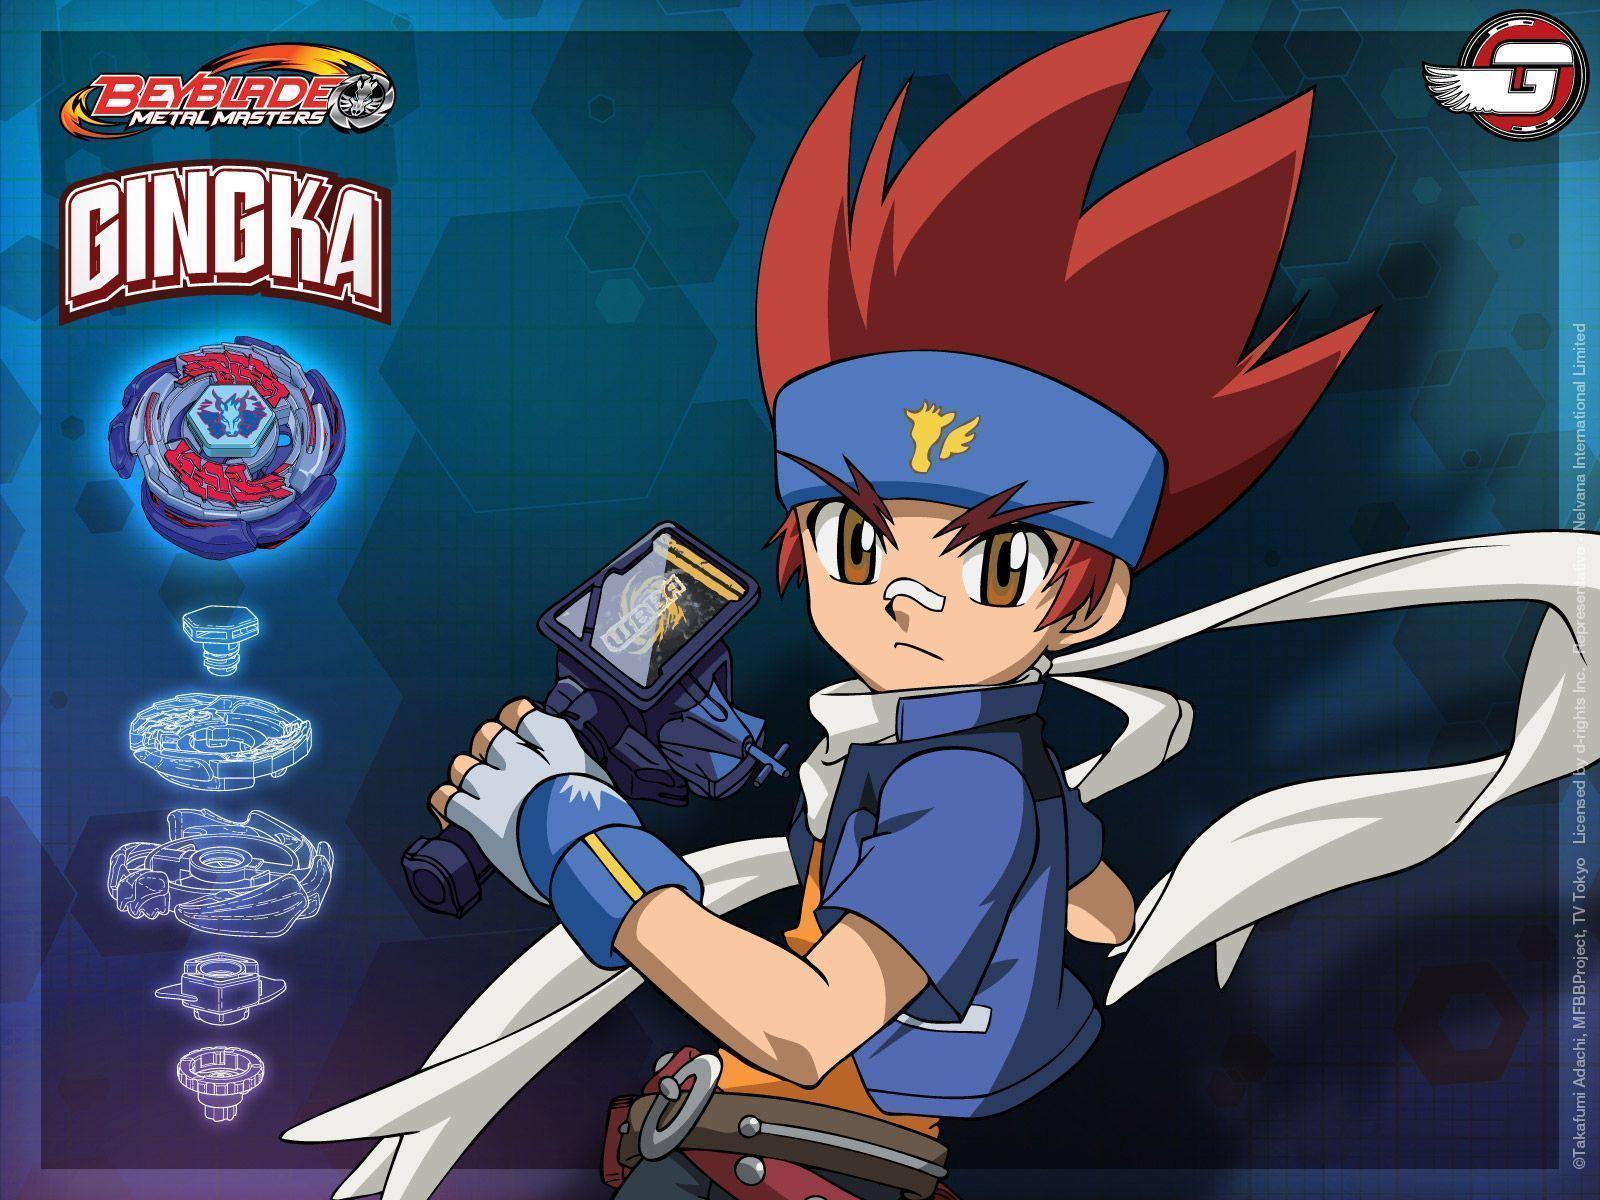 Beyblade metal fusion wallpapers wallpaper cave beyblade metal fusion oc characters images gingka hd wallpaper and voltagebd Images